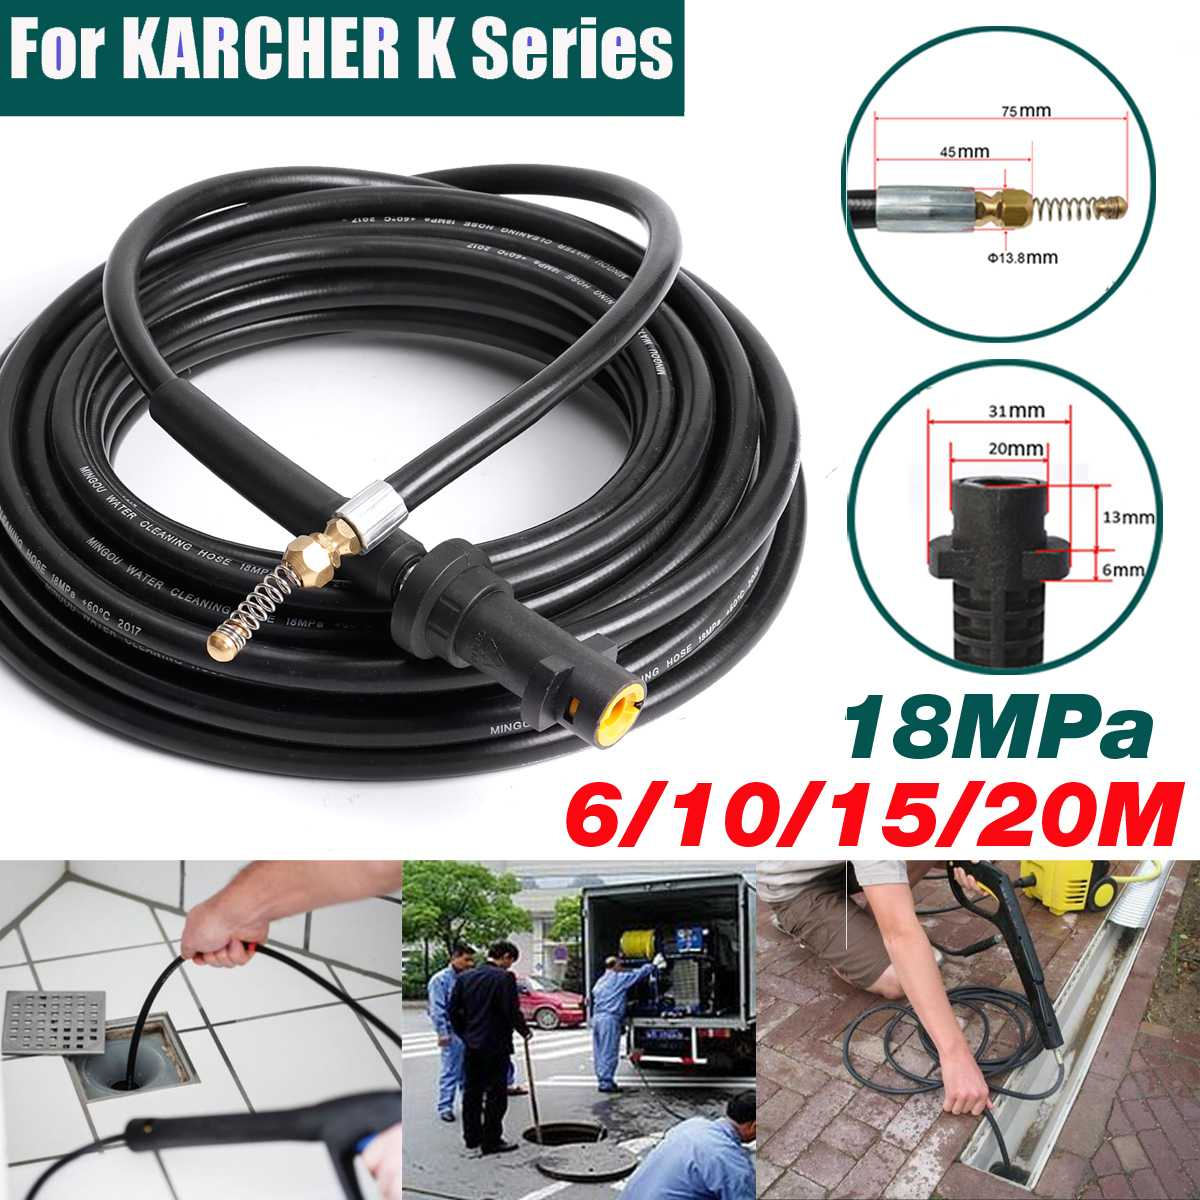 6/10/15/20m Pressure Washer Sewer Drain Cleaning Hose 1/4 Inch Quick Release Drain Sewer Cleaning Hose